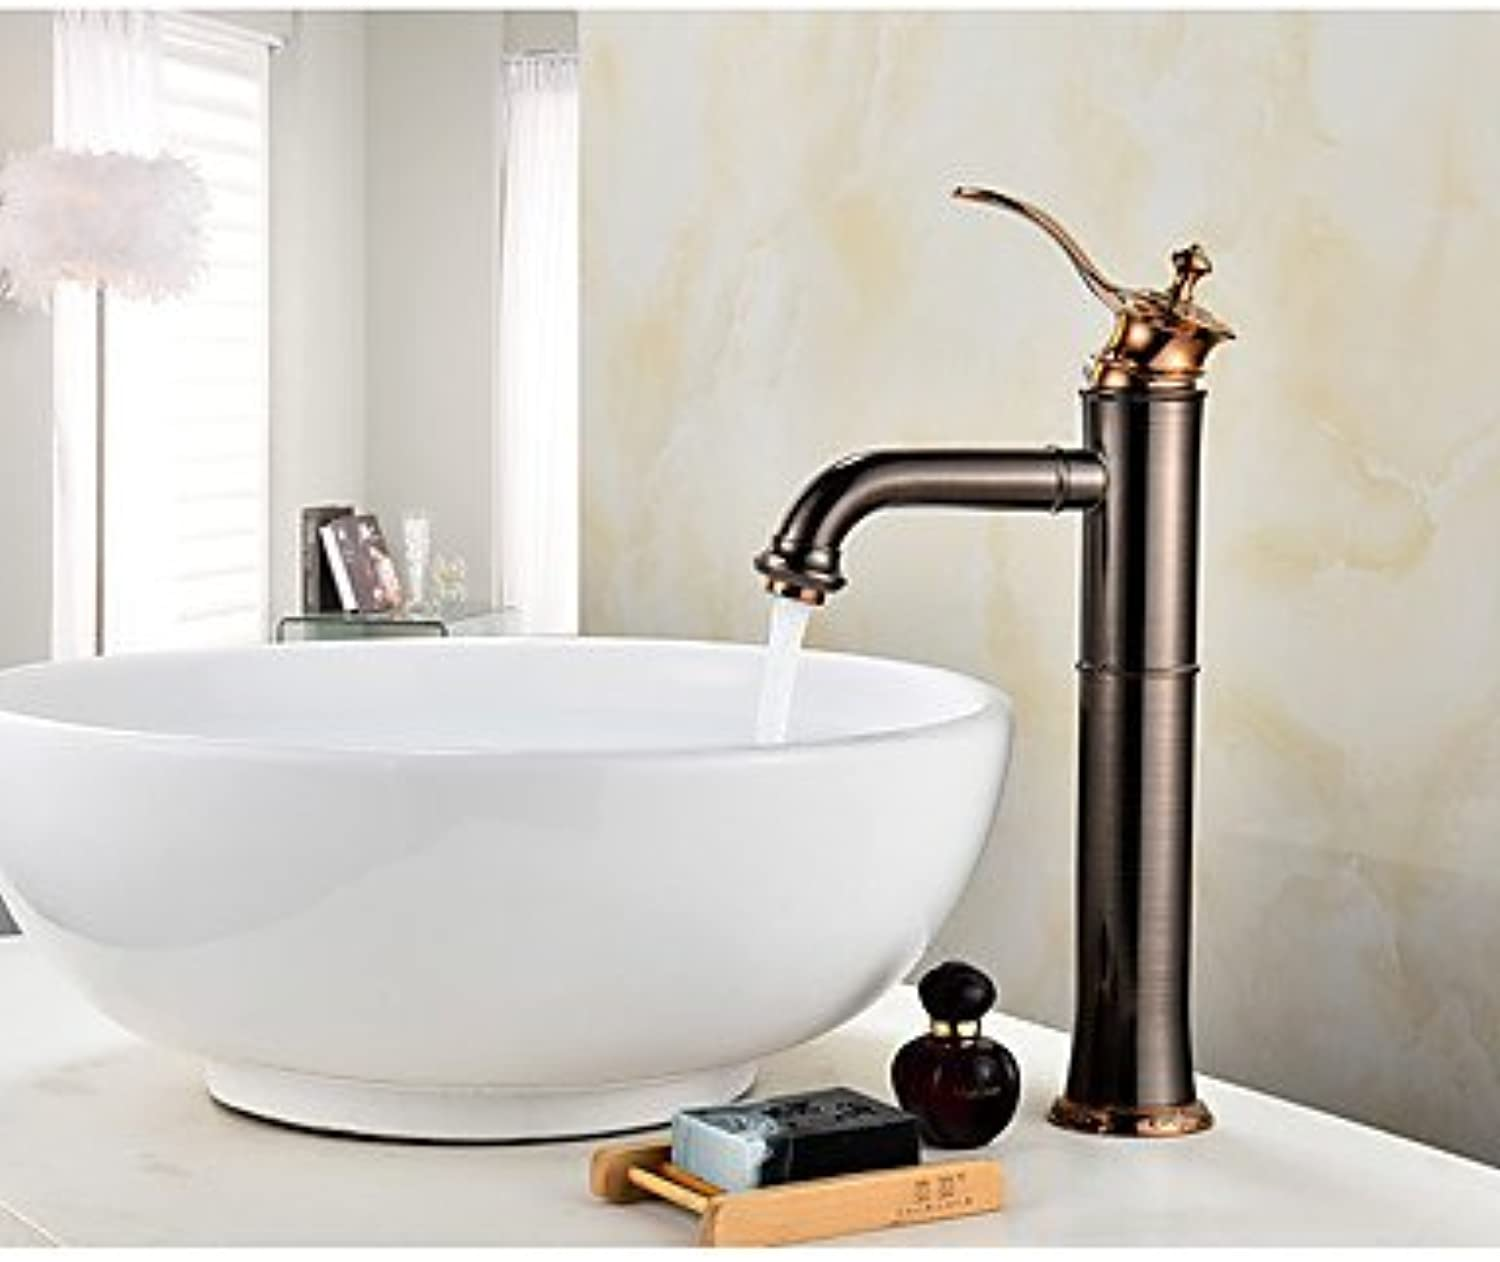 FF Contemporary Antique Centerset Widespread with Ceramic Valve Single Handle One Hole for Oil-rubbed Bronze , Bathroom Sink Faucet